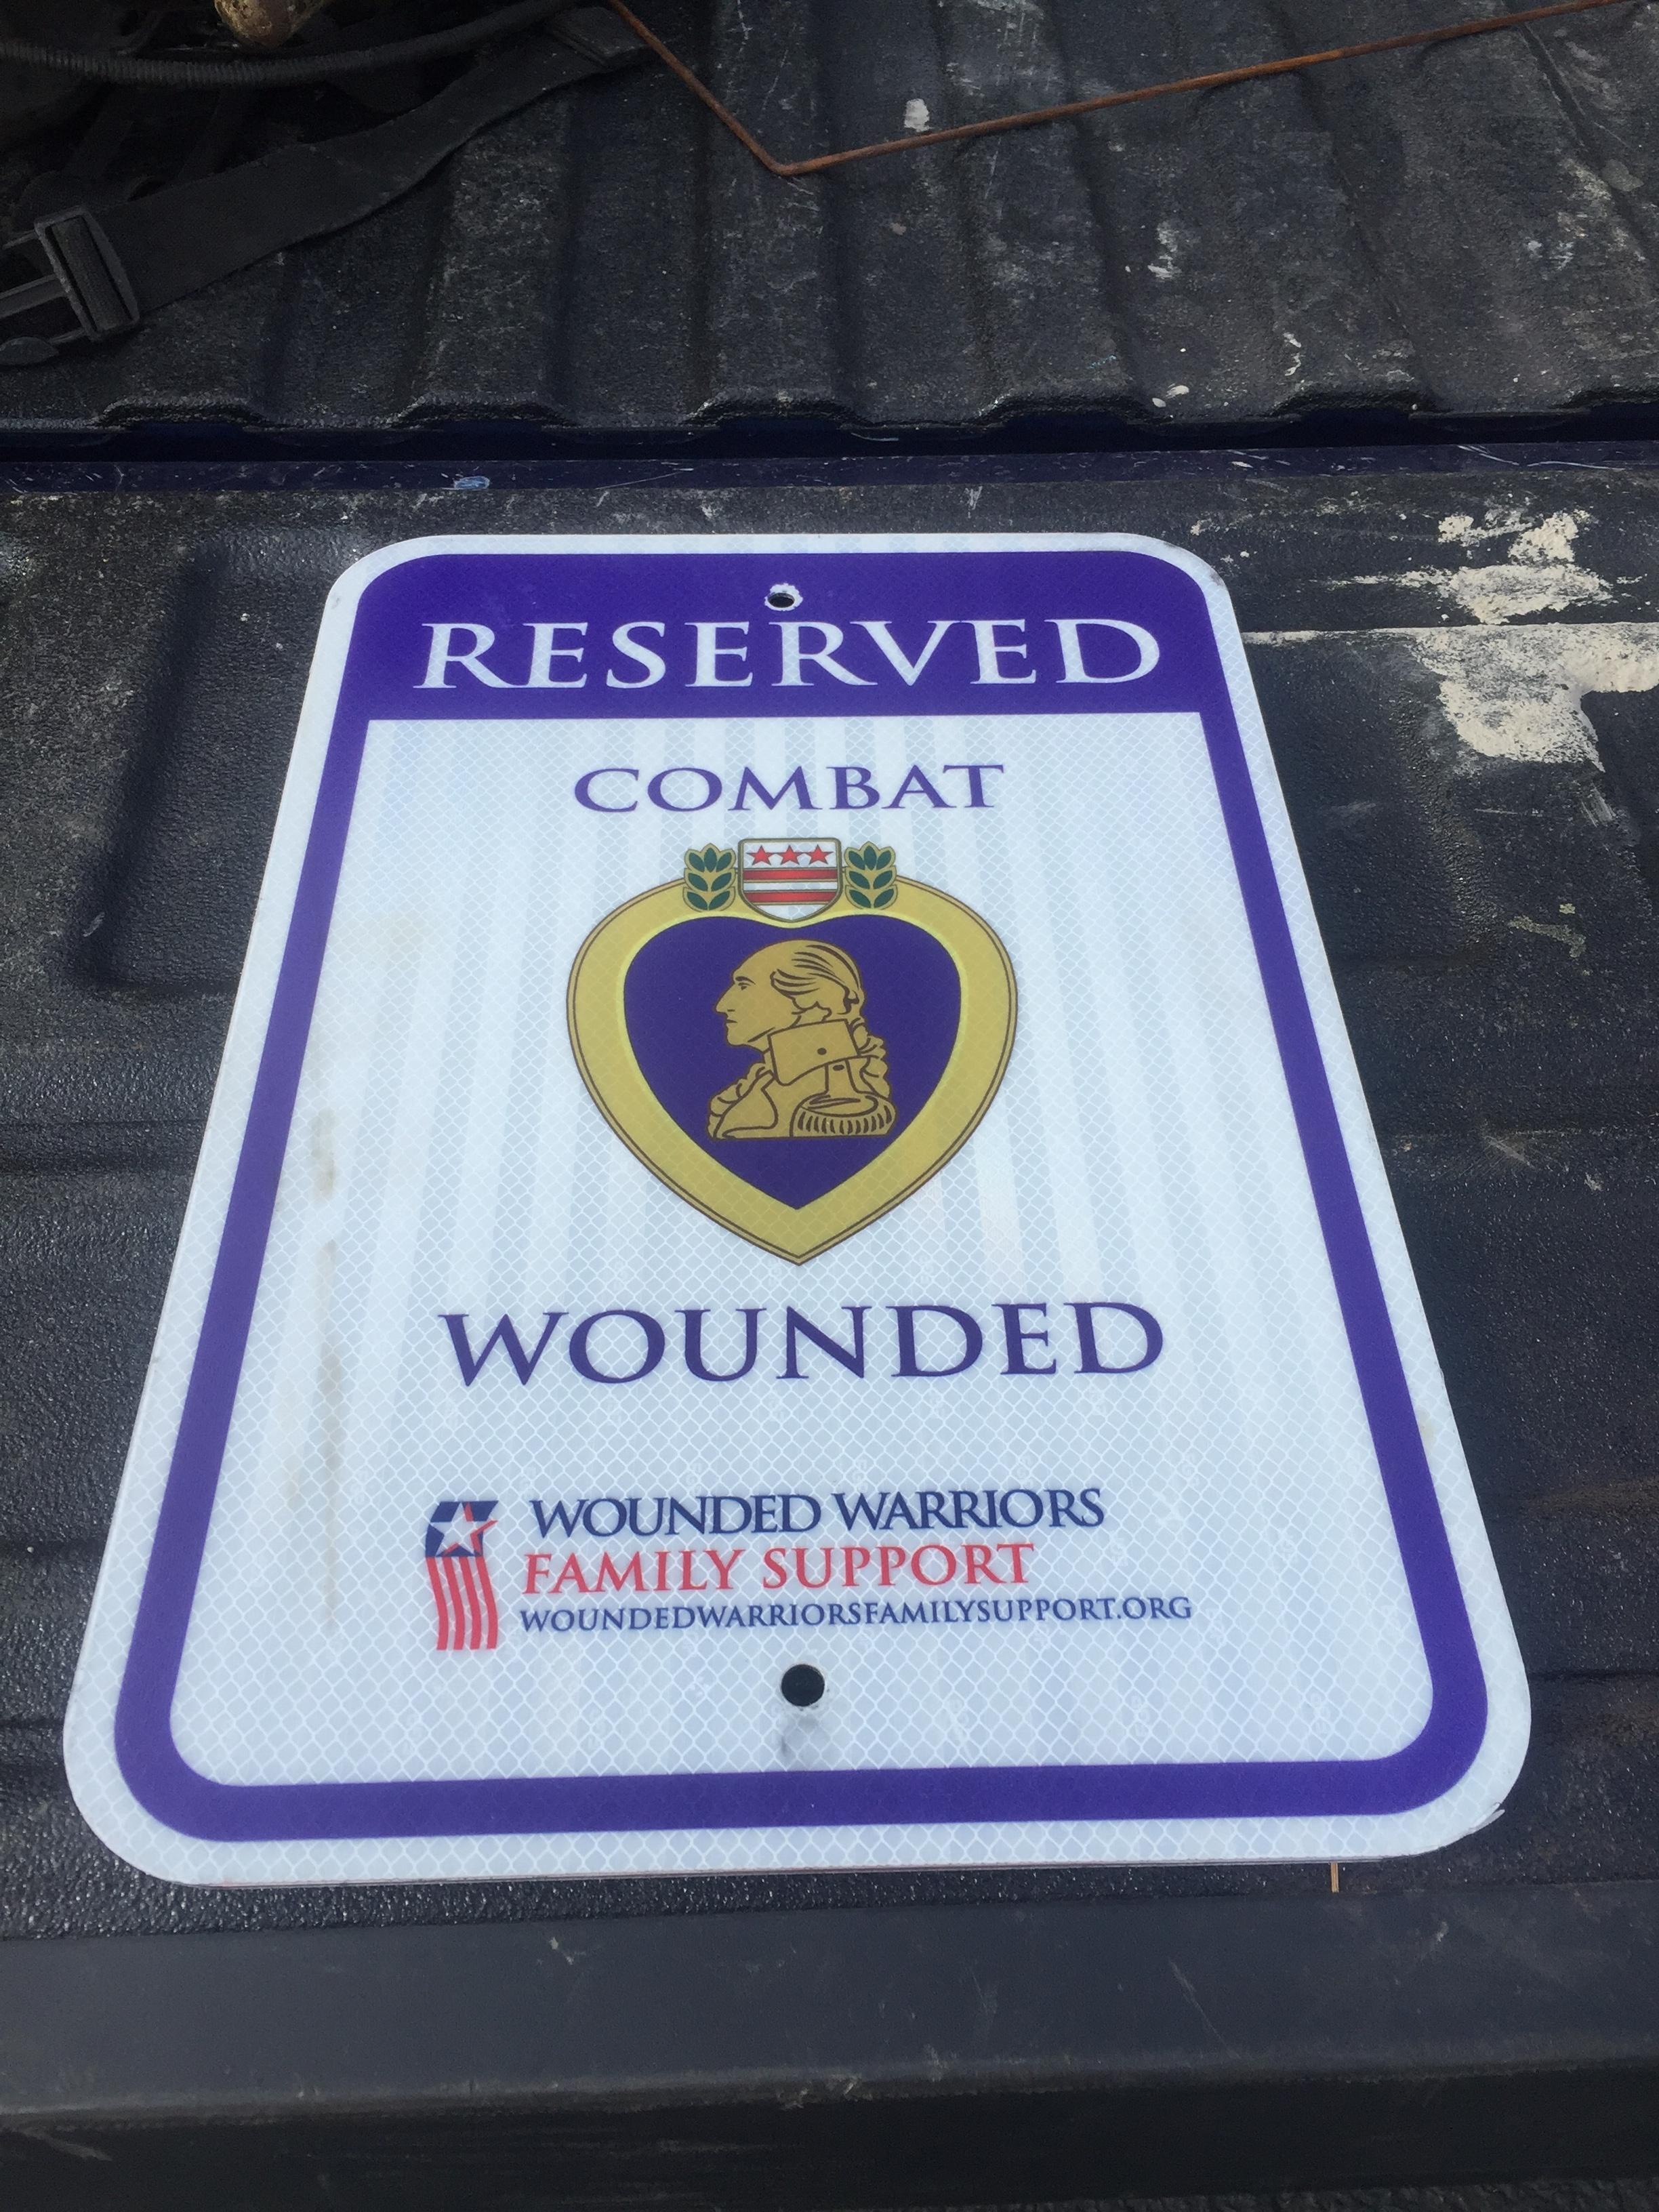 Combat_Wounded_Parking_1.jpg